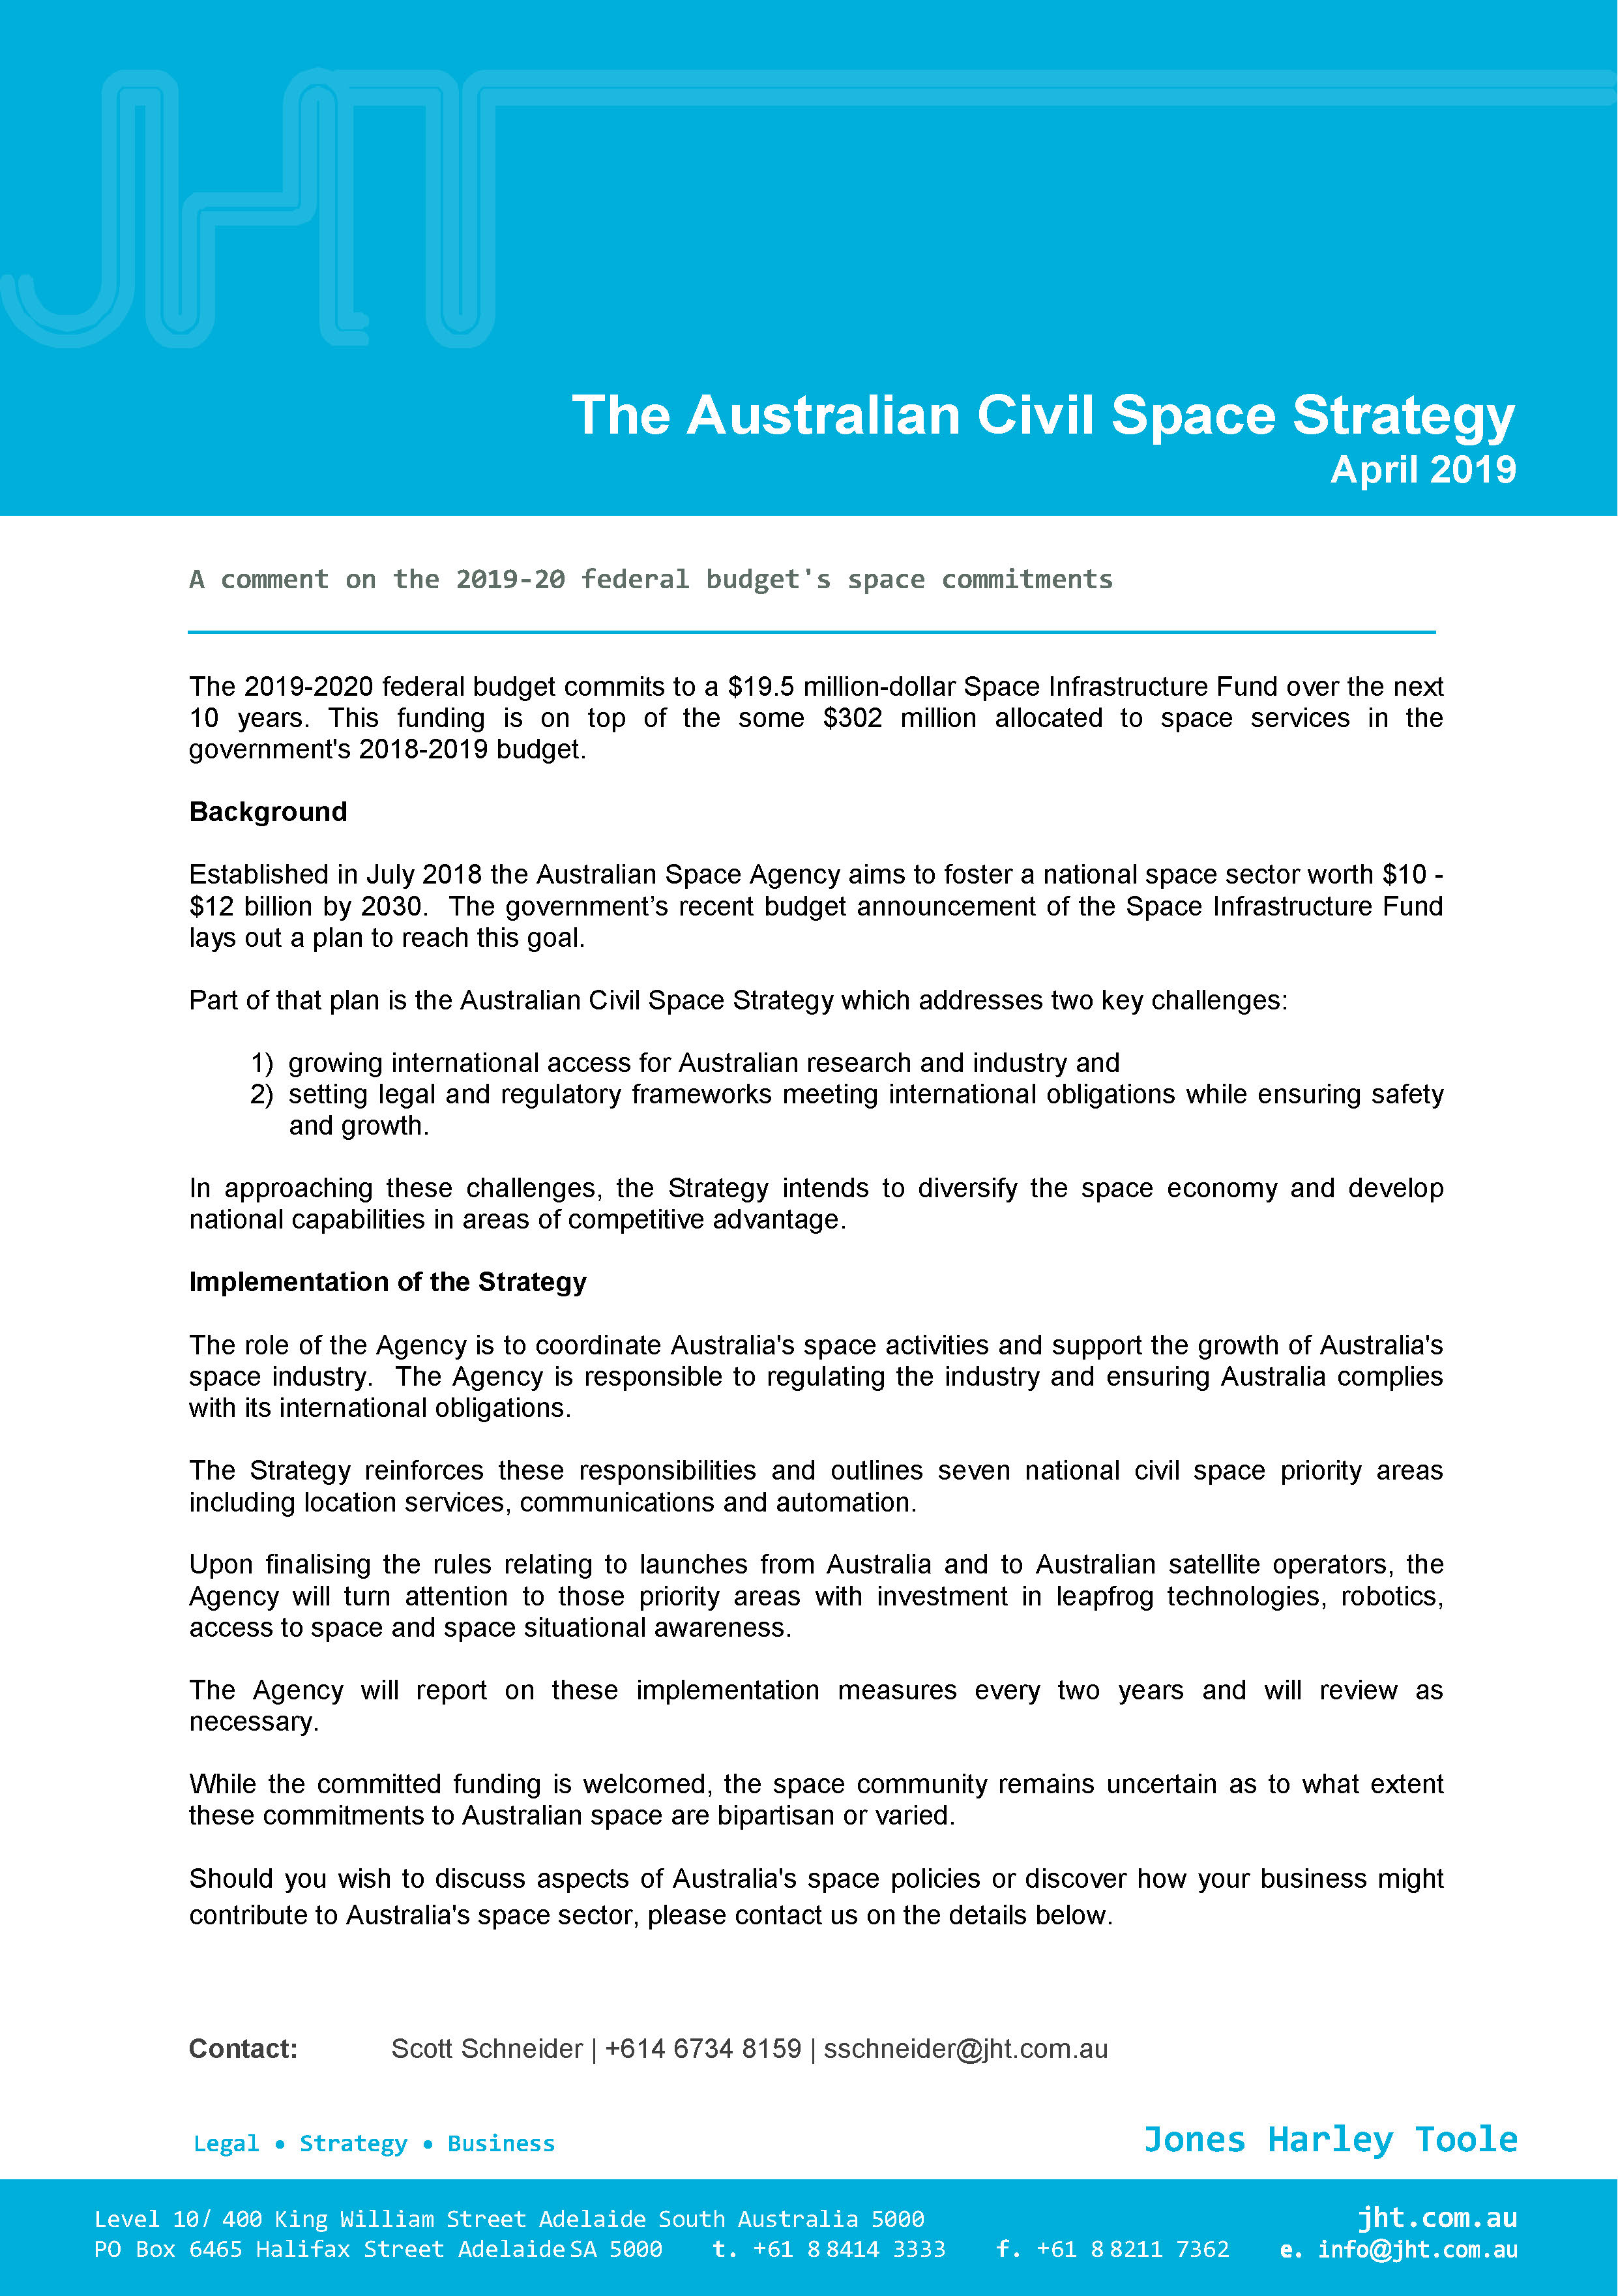 JHT Considers Aust Civil Space Strategy April 2019